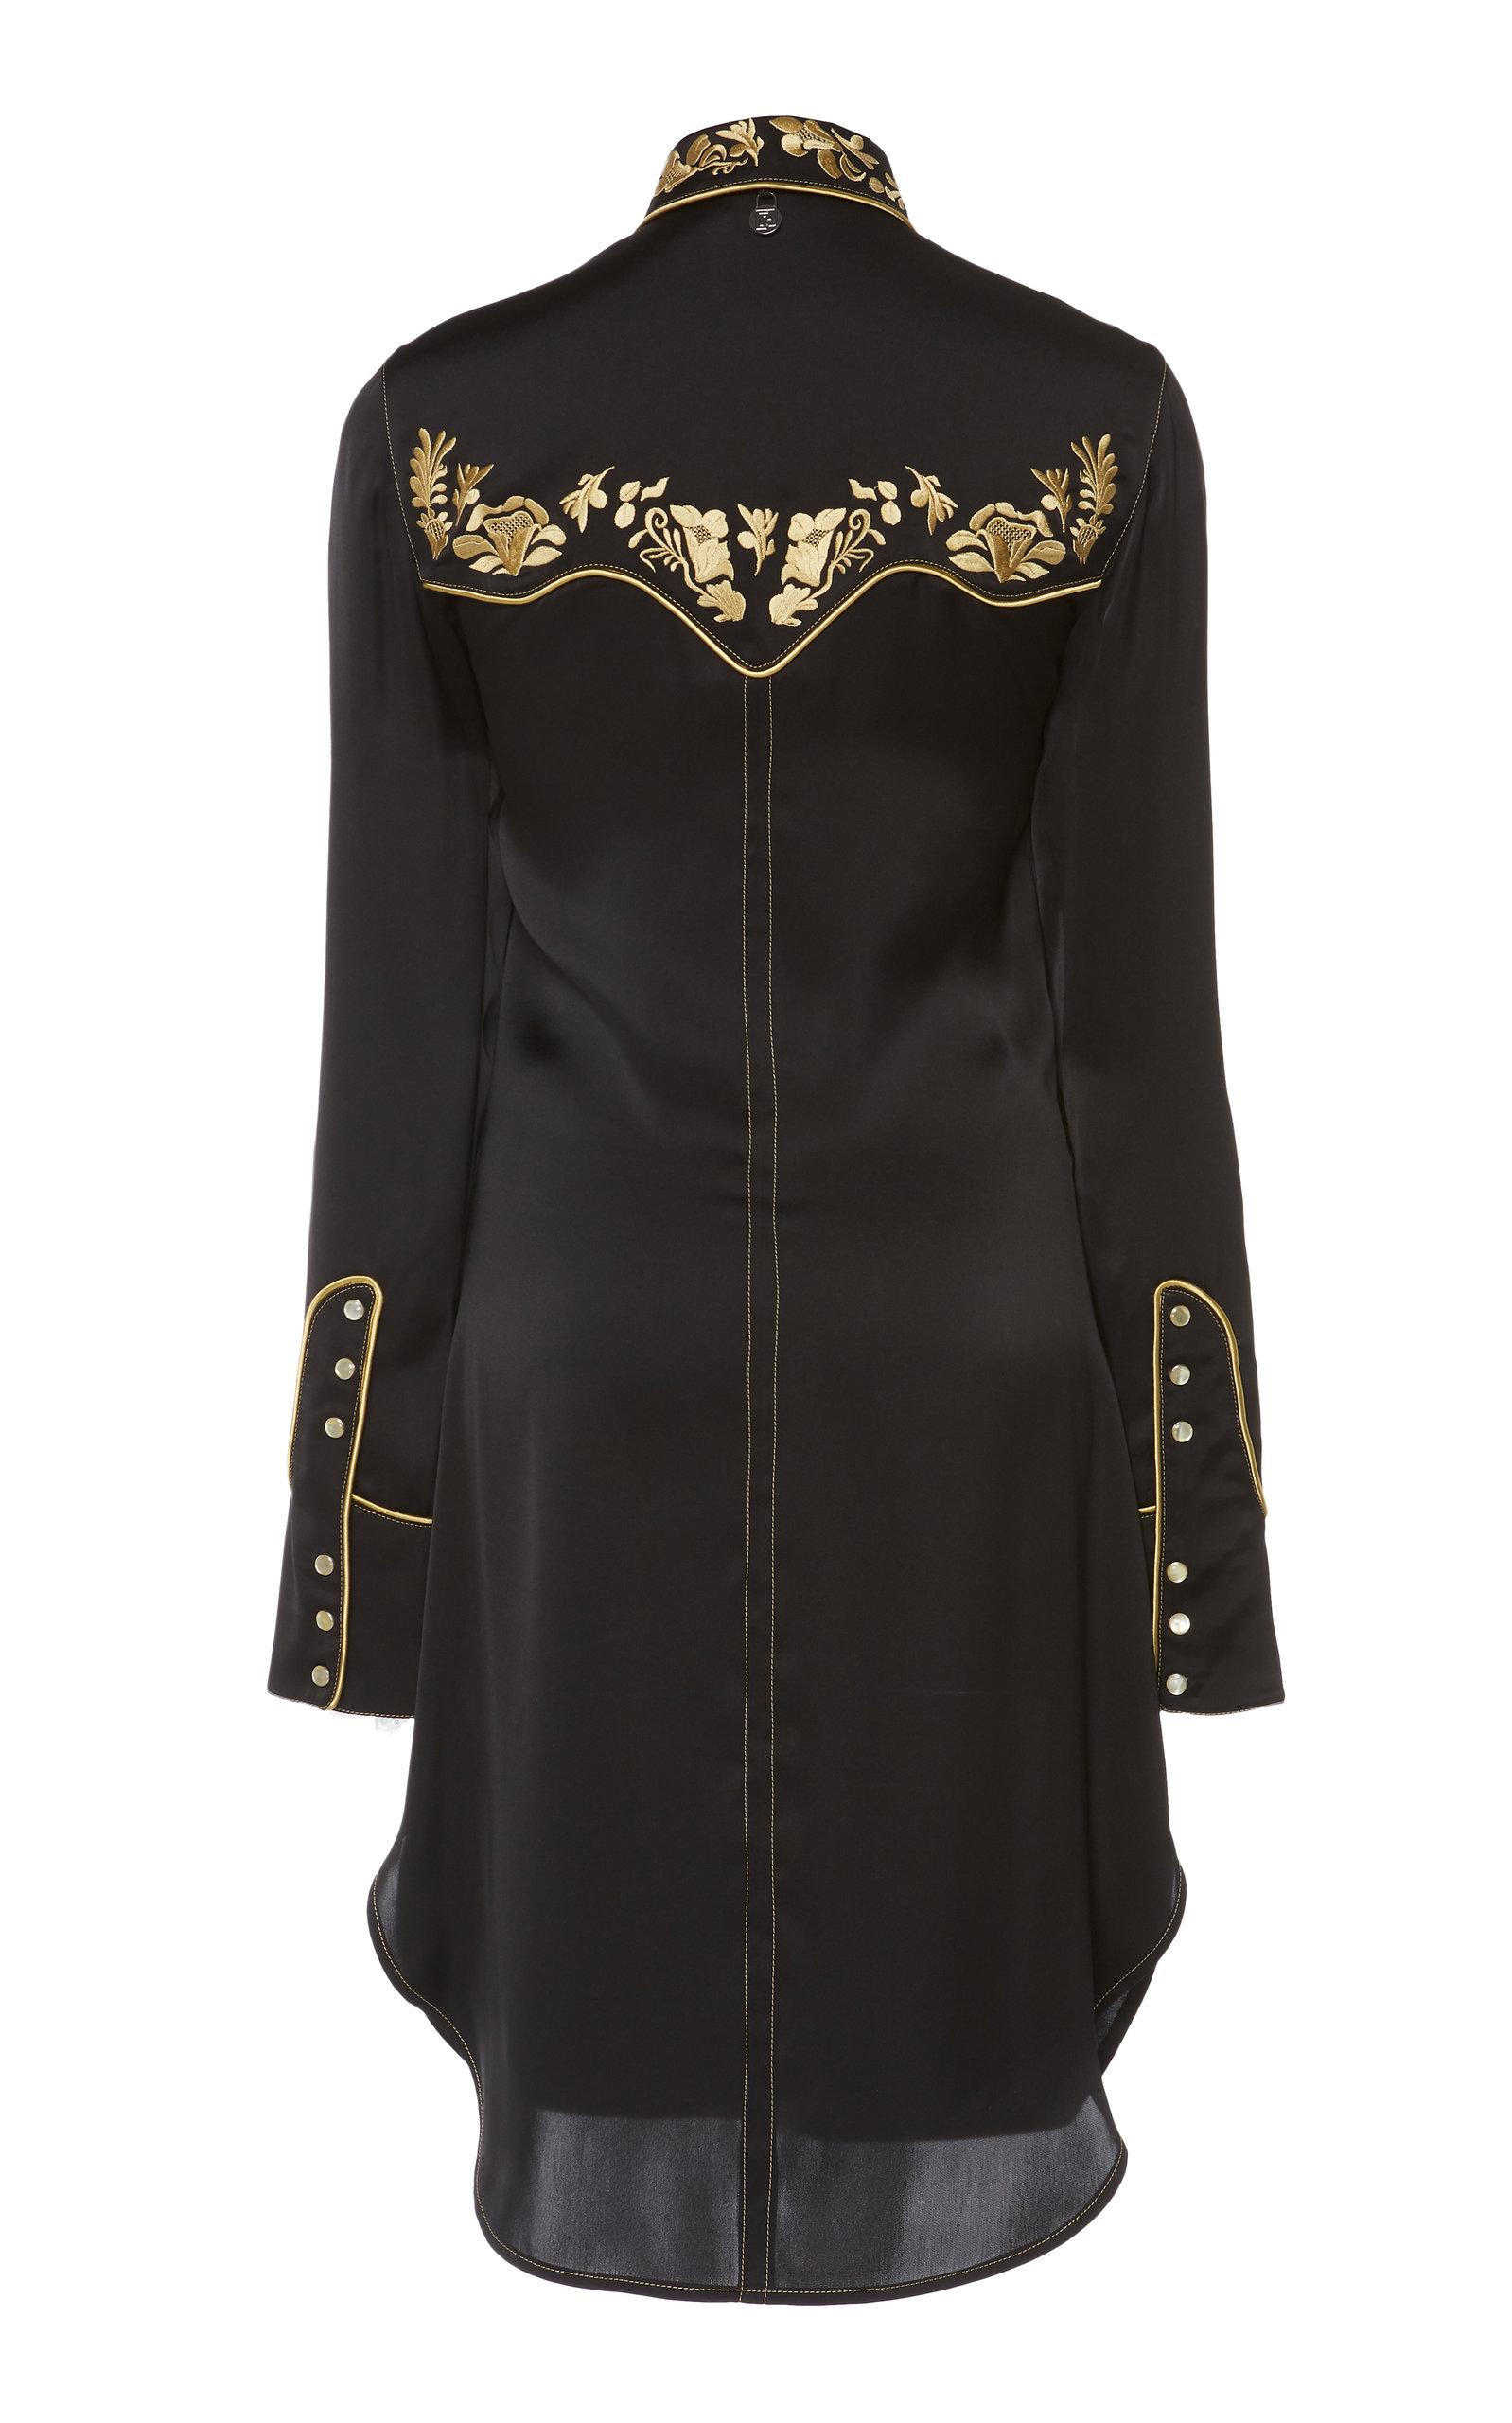 ed09a0c3 Paco Rabanne - Black Embroidered Satin Collared Shirt - Lyst. View  fullscreen